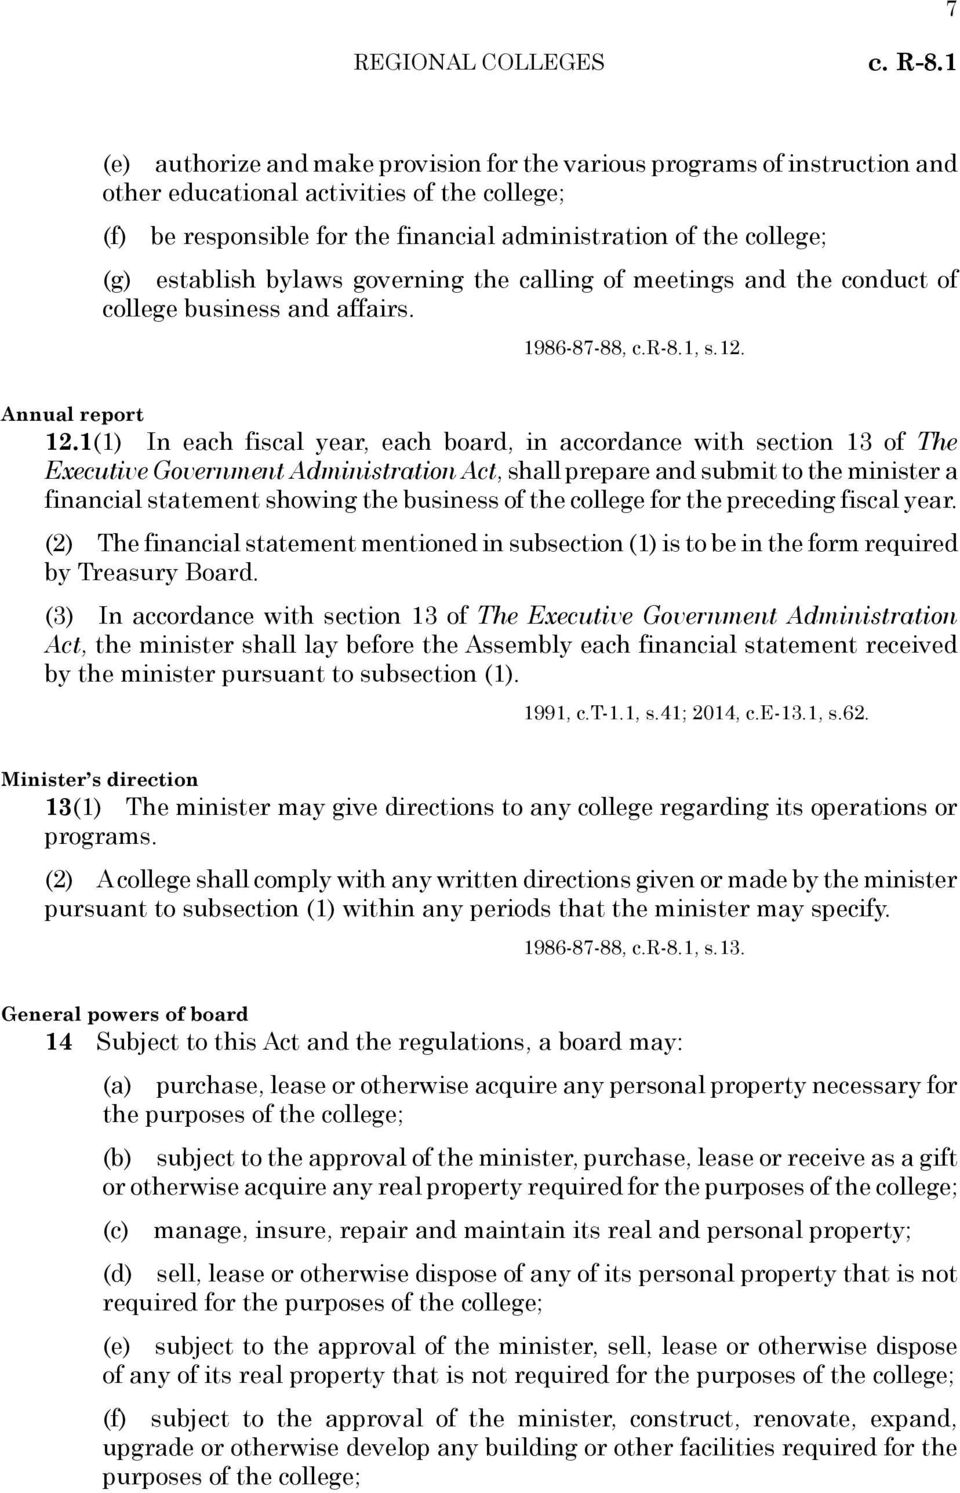 establish bylaws governing the calling of meetings and the conduct of college business and affairs. 1986-87-88, c.r-8.1, s.12. Annual report 12.